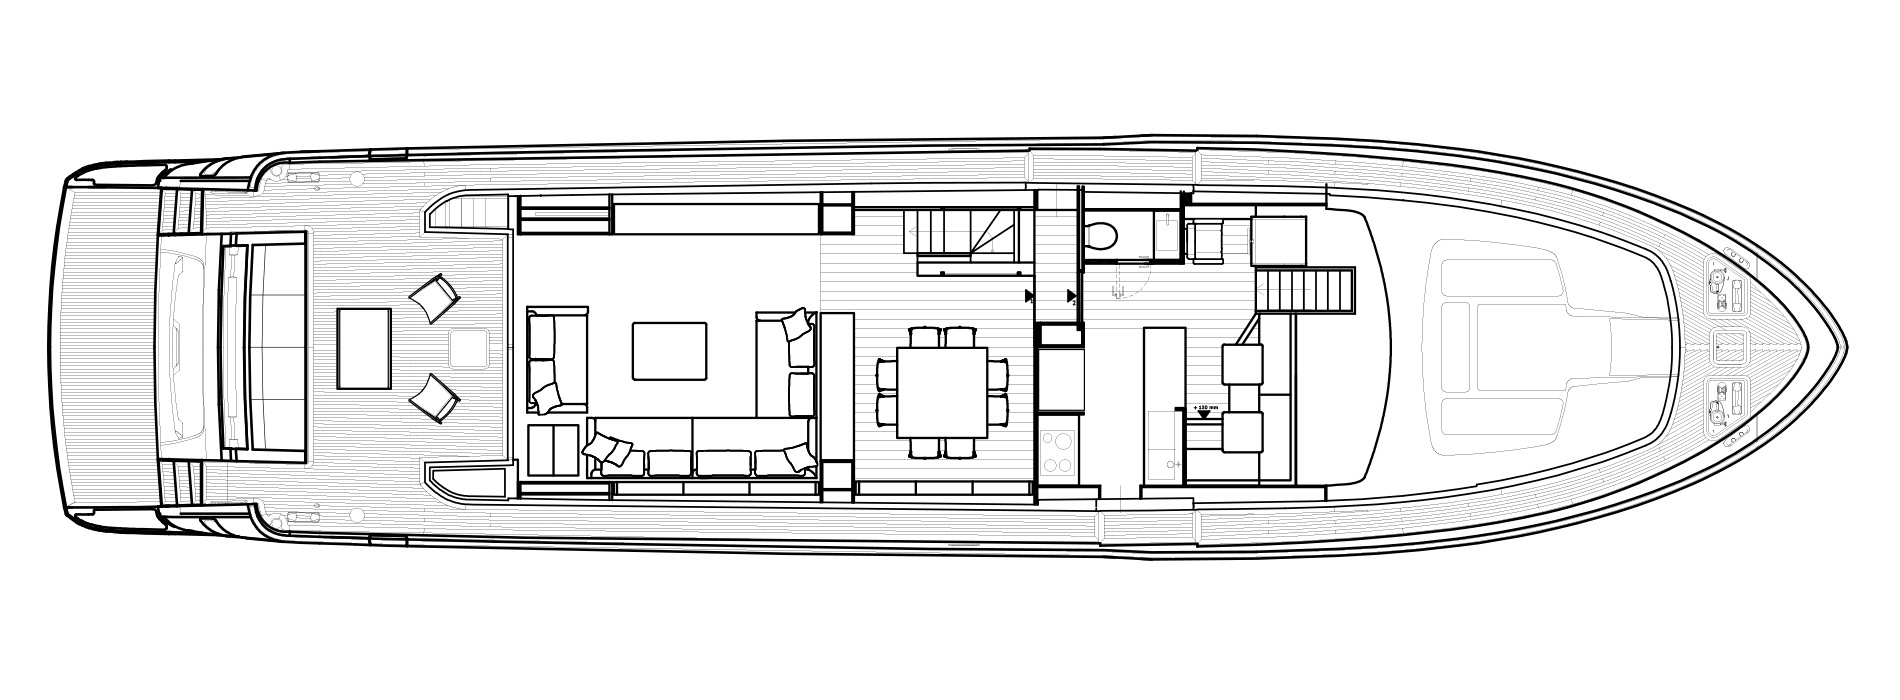 Sanlorenzo Yachts SL86 Main Deck Version USA